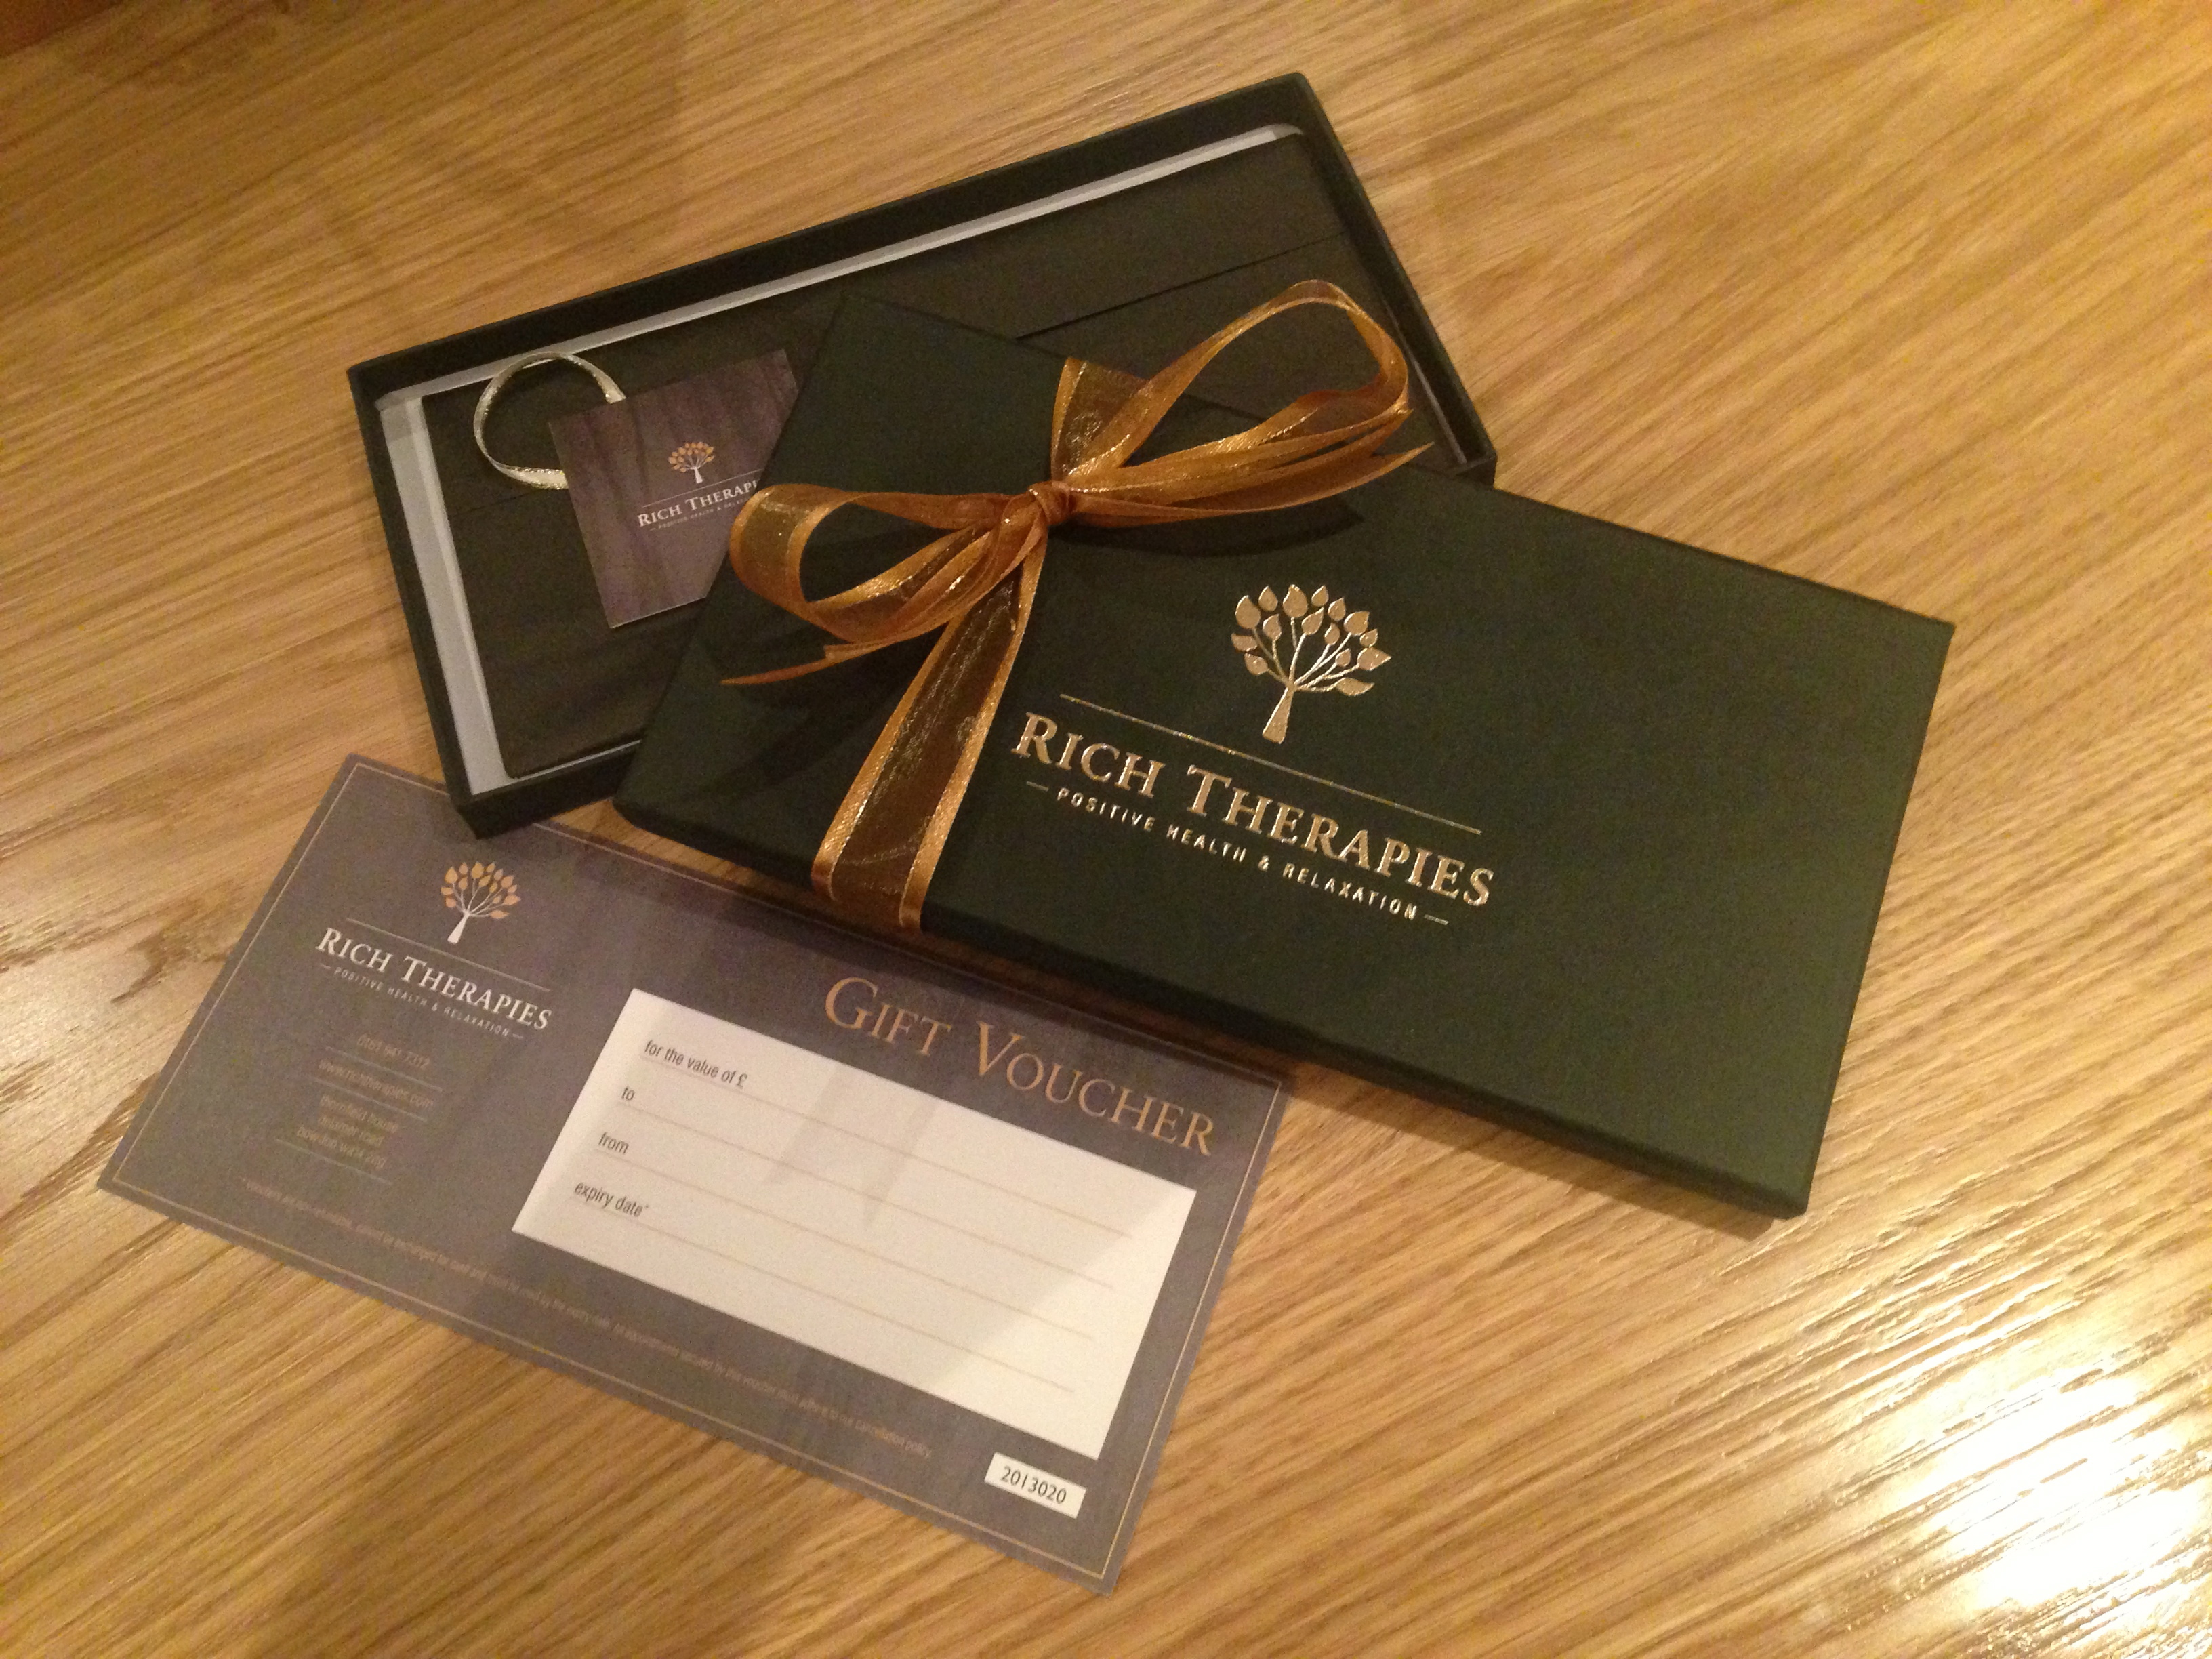 Gifts | Rich Therapies